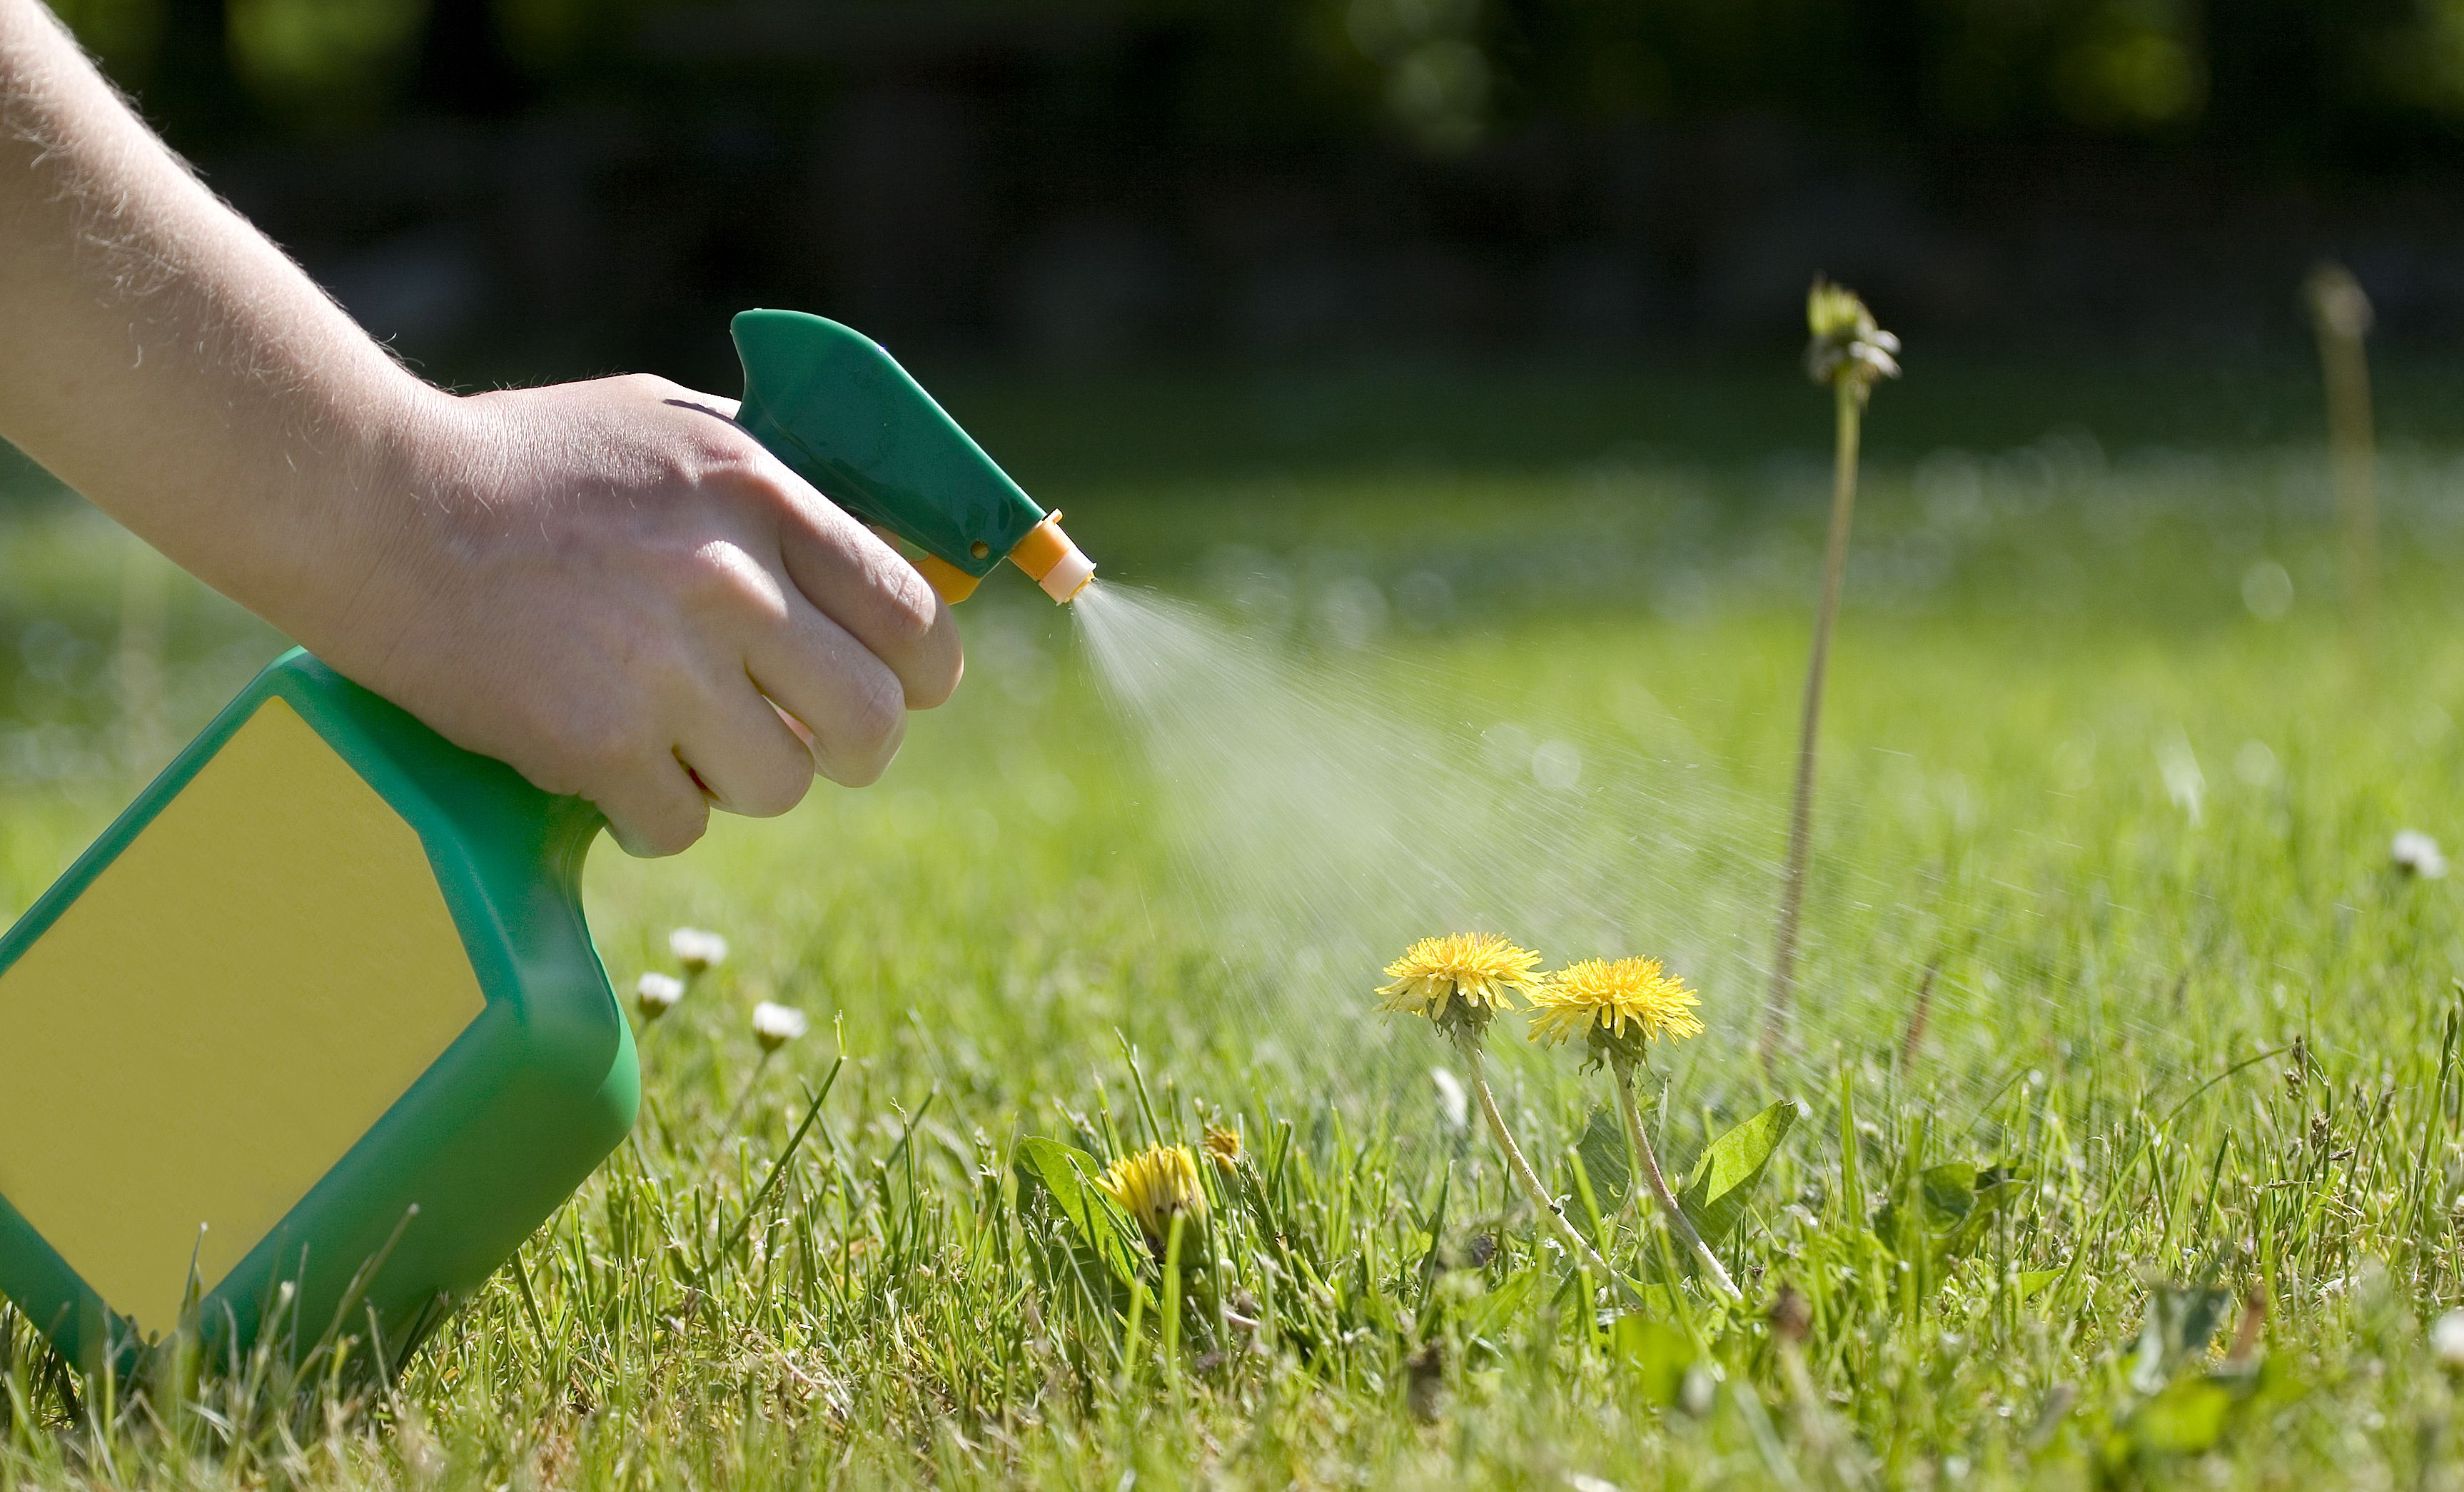 Best Weed Killer for Your Lawn - How to Kill Weeds this Spring